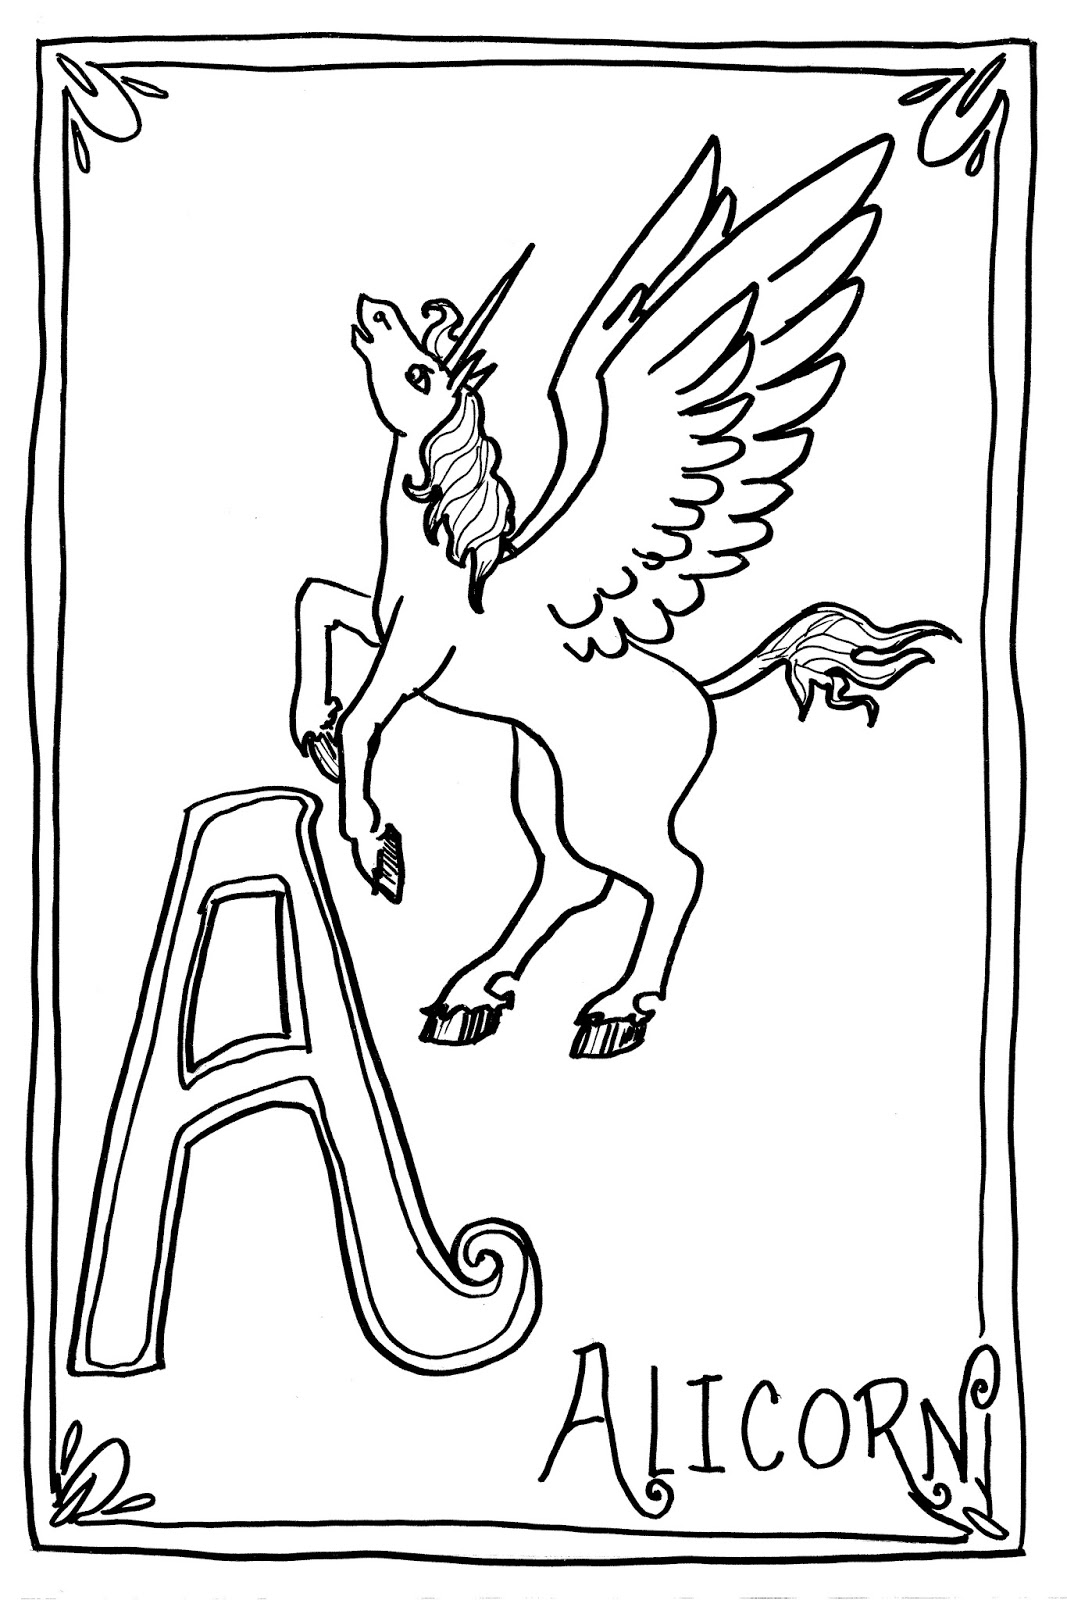 (free!) Original Coloring Pages: A is for Alicorn